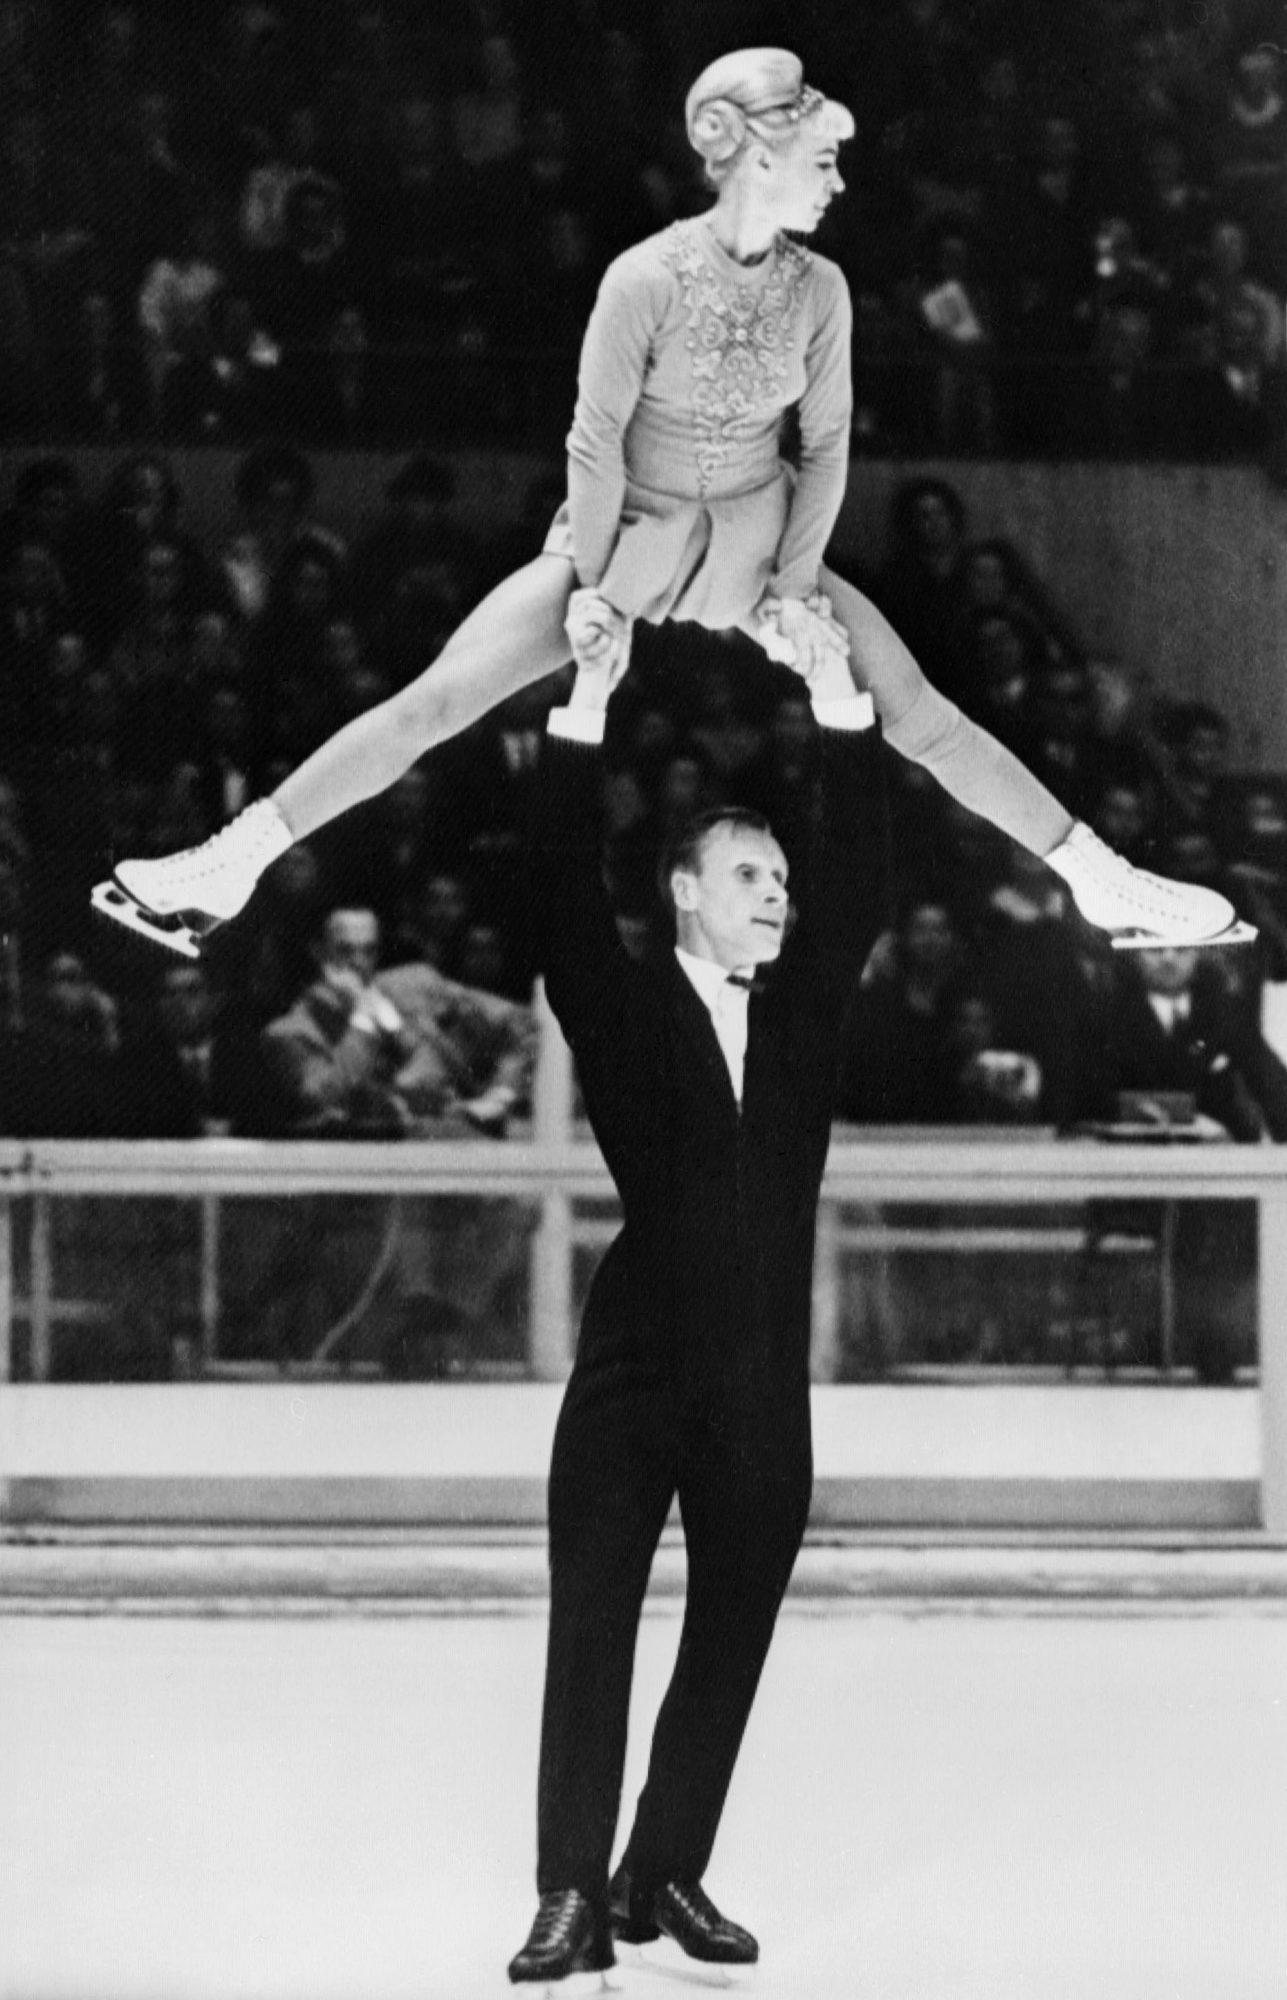 <p>Oleg and Ludmila Protopopov (1968 and 1964 Olympic Champions)</p>